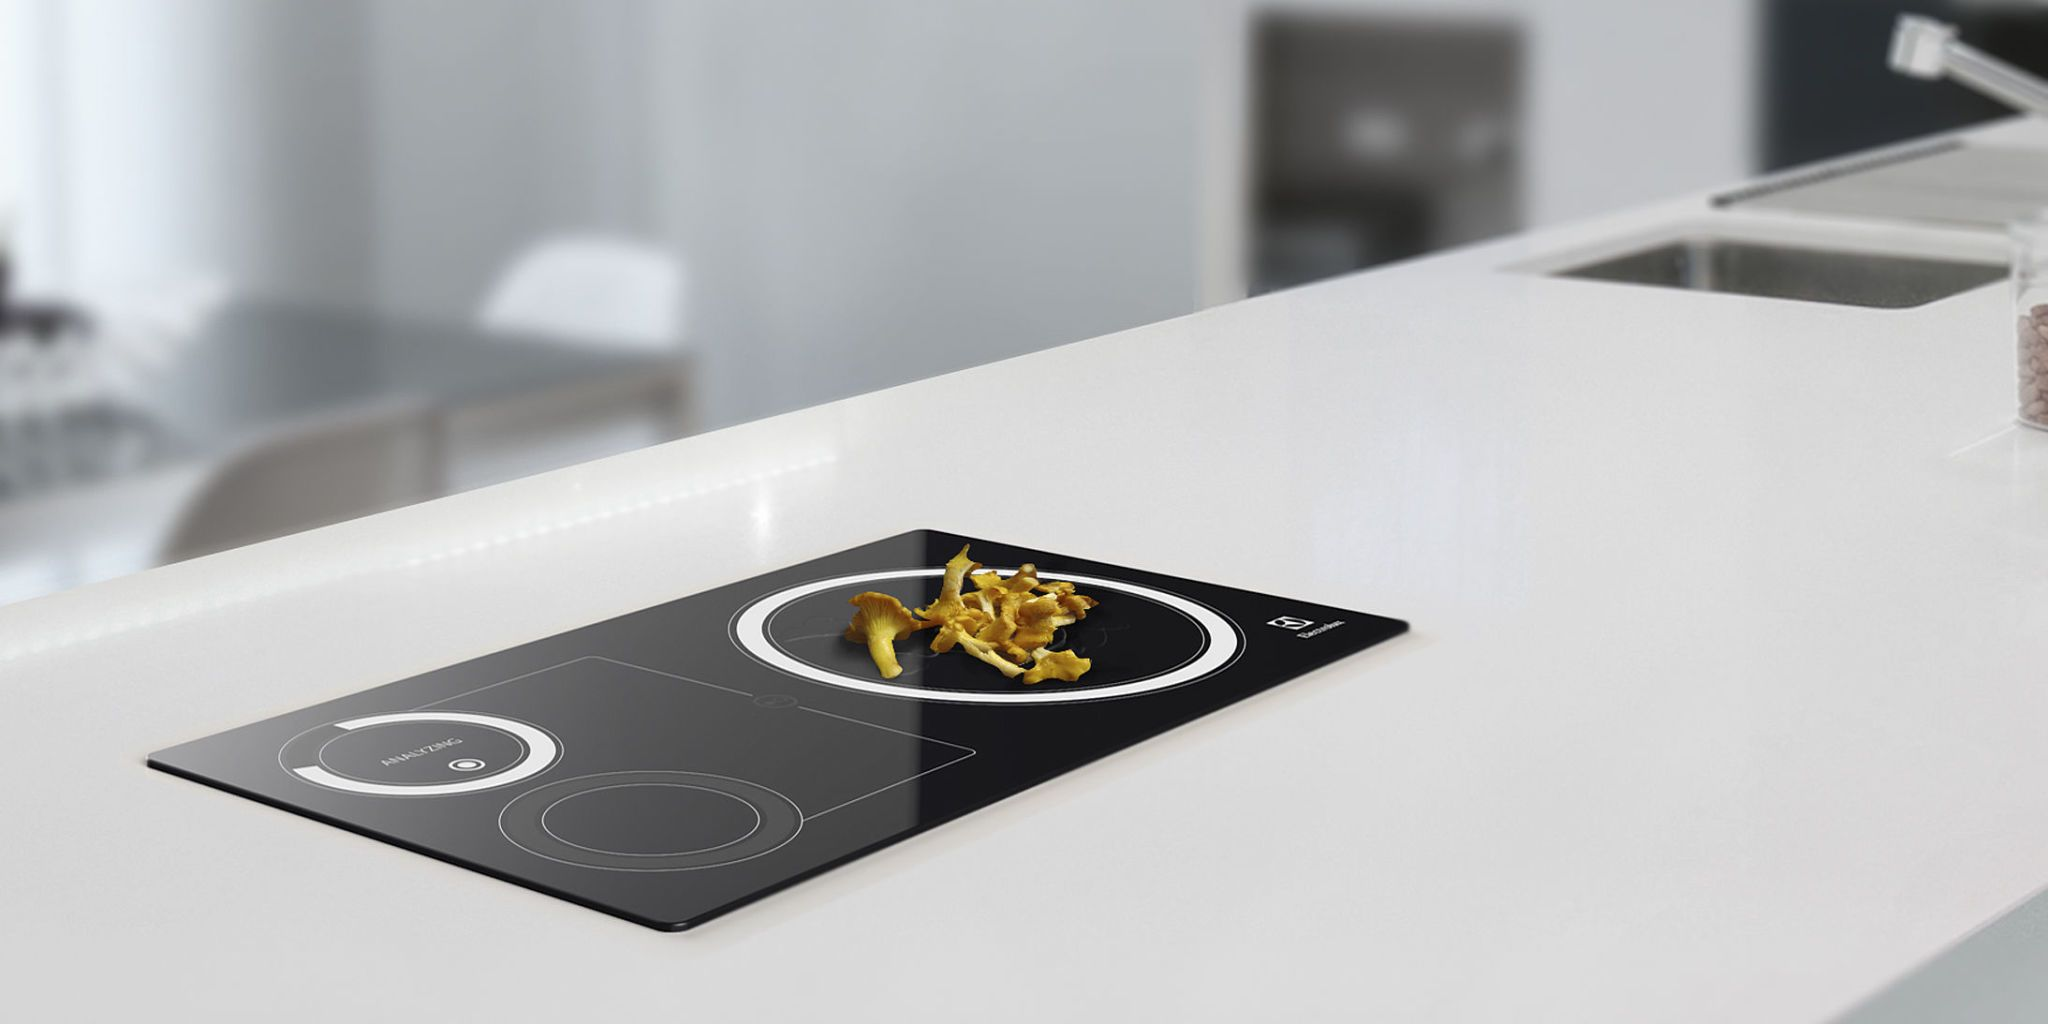 11 Futuristic Kitchen Gadgets That Will Change The Way You Cook